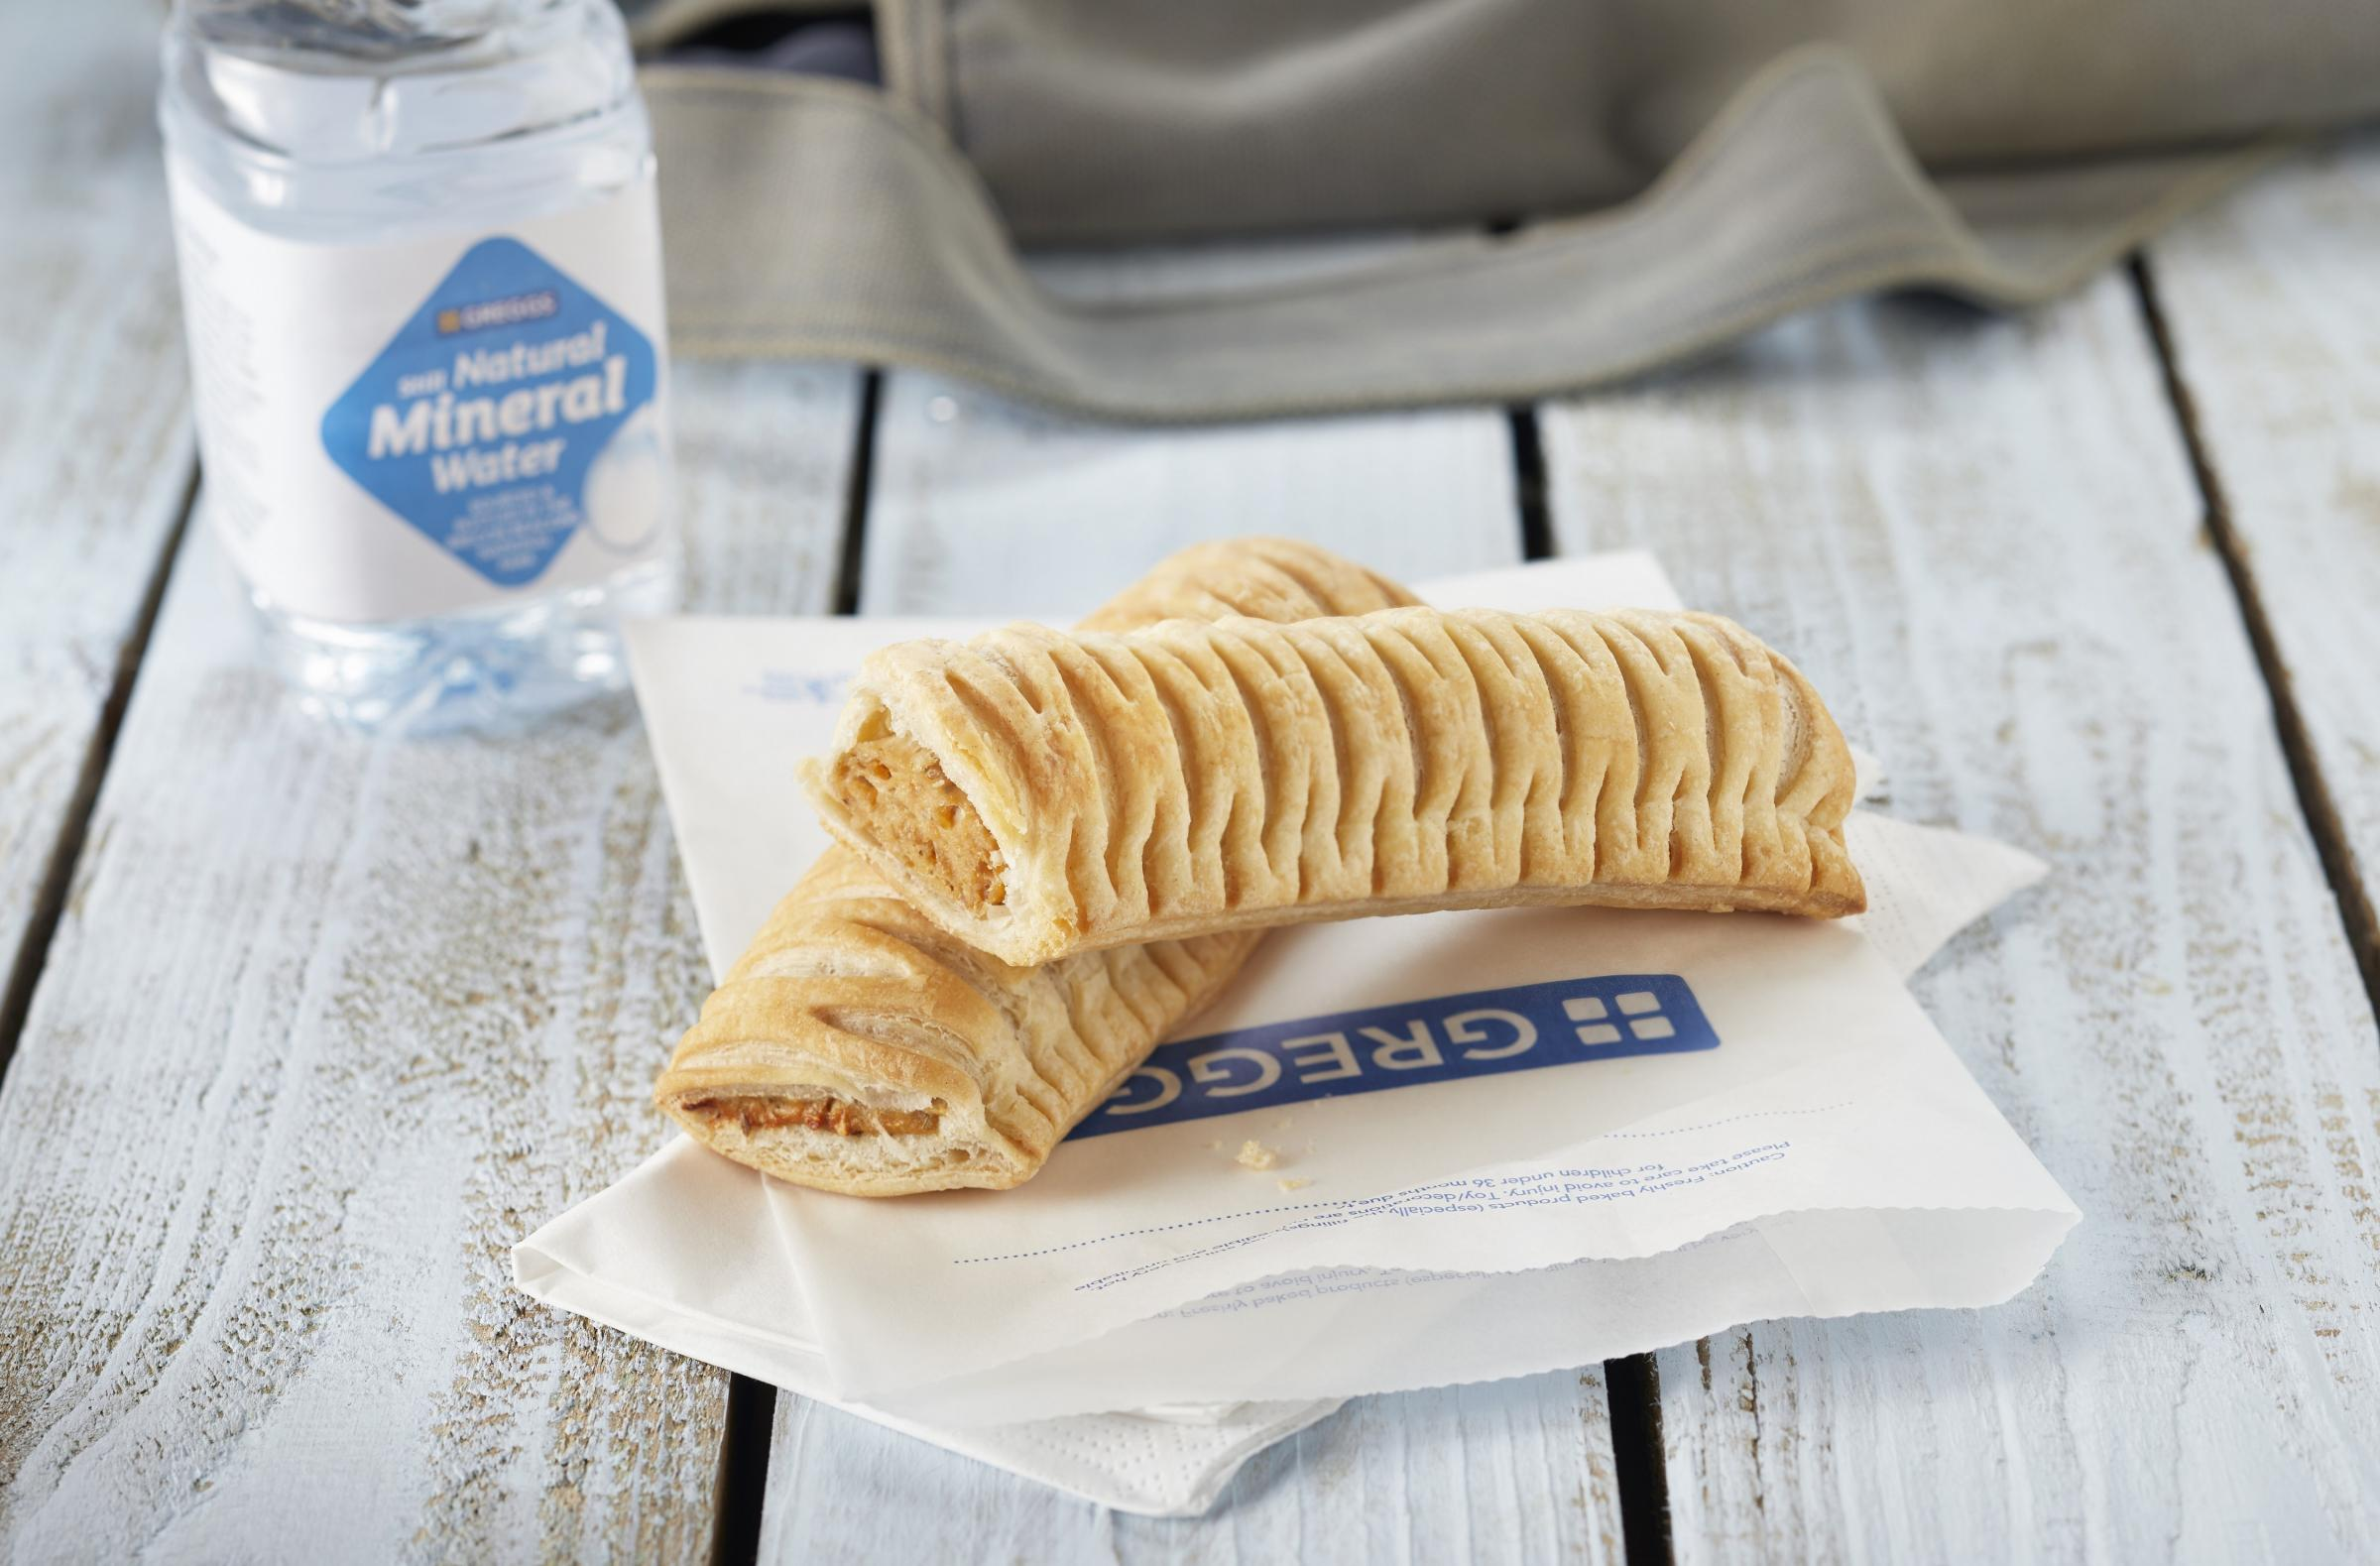 Greggs has announced it is to 'roll out' its vegan sausage roll across the country.